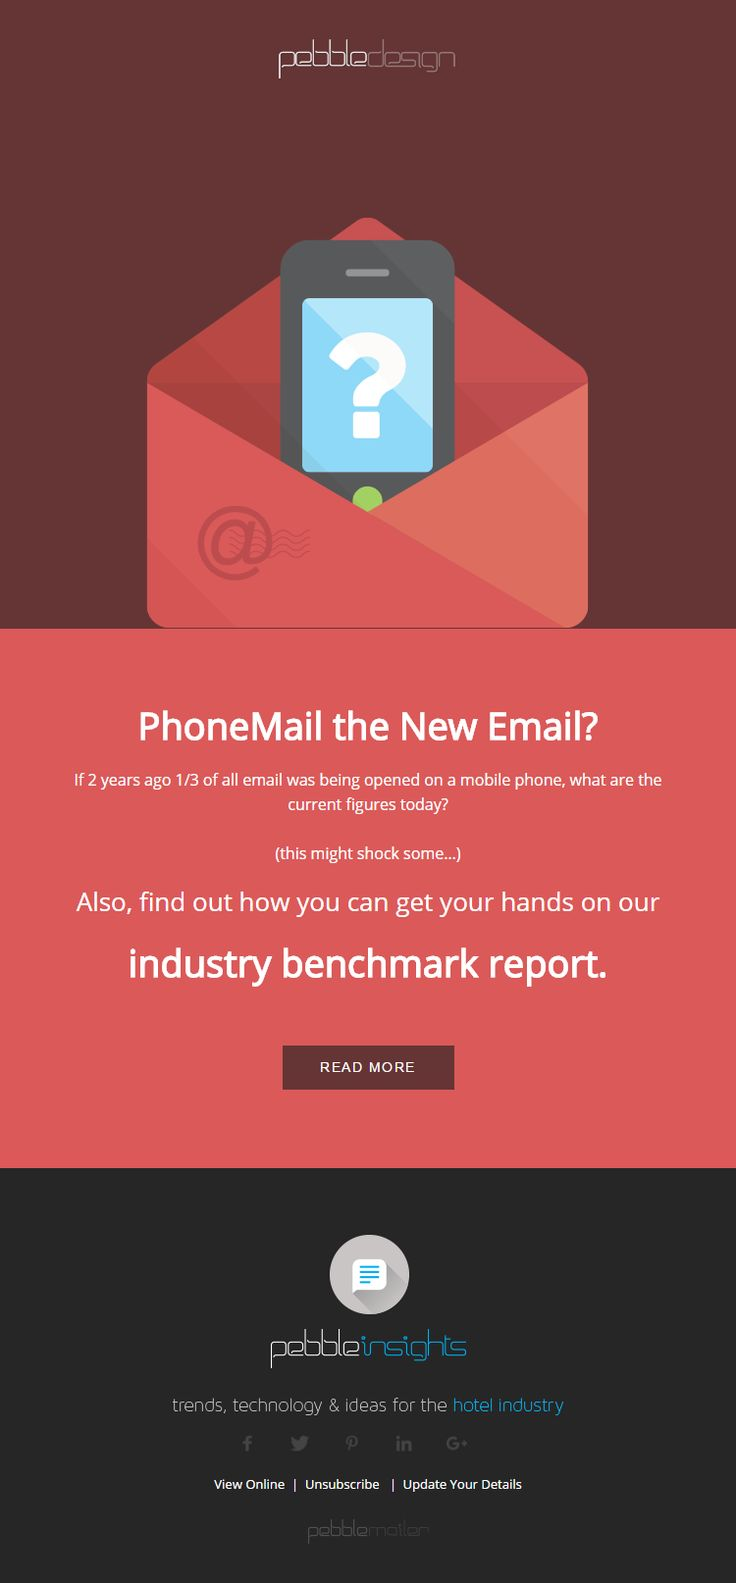 PhoneMail the New Email? - Hospitality Insights #hospitalityinsights #hotelwebdesign #hotelwebsitedesign #pebbledesign #hotelwebsites